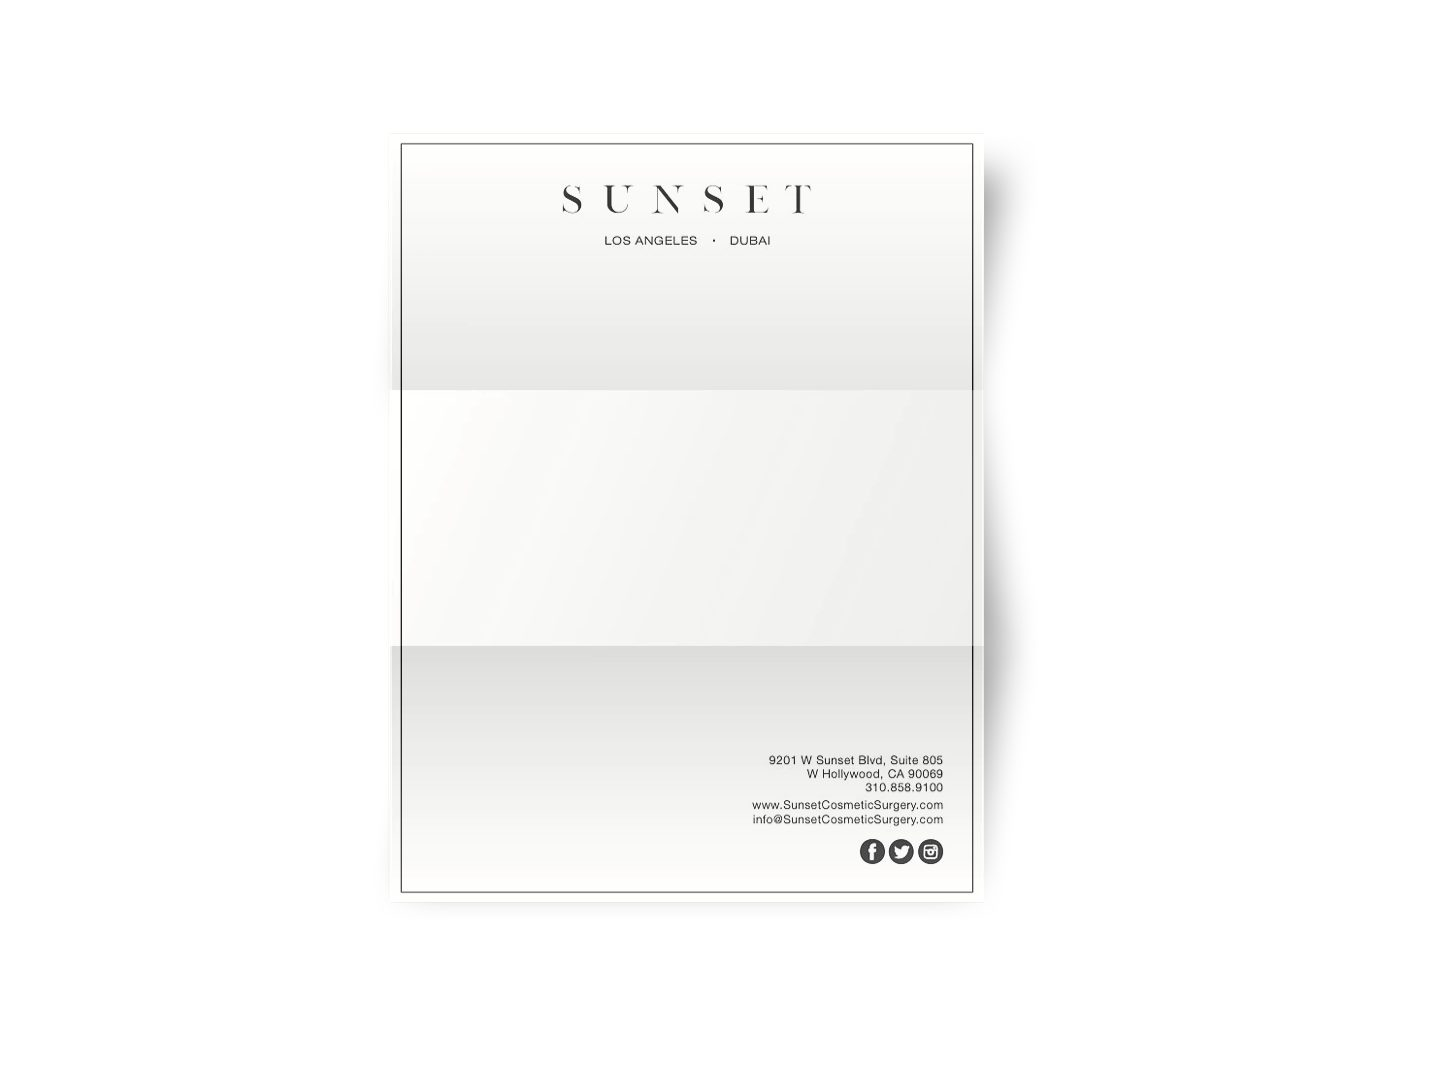 letterhead sunset cosmetic surgery